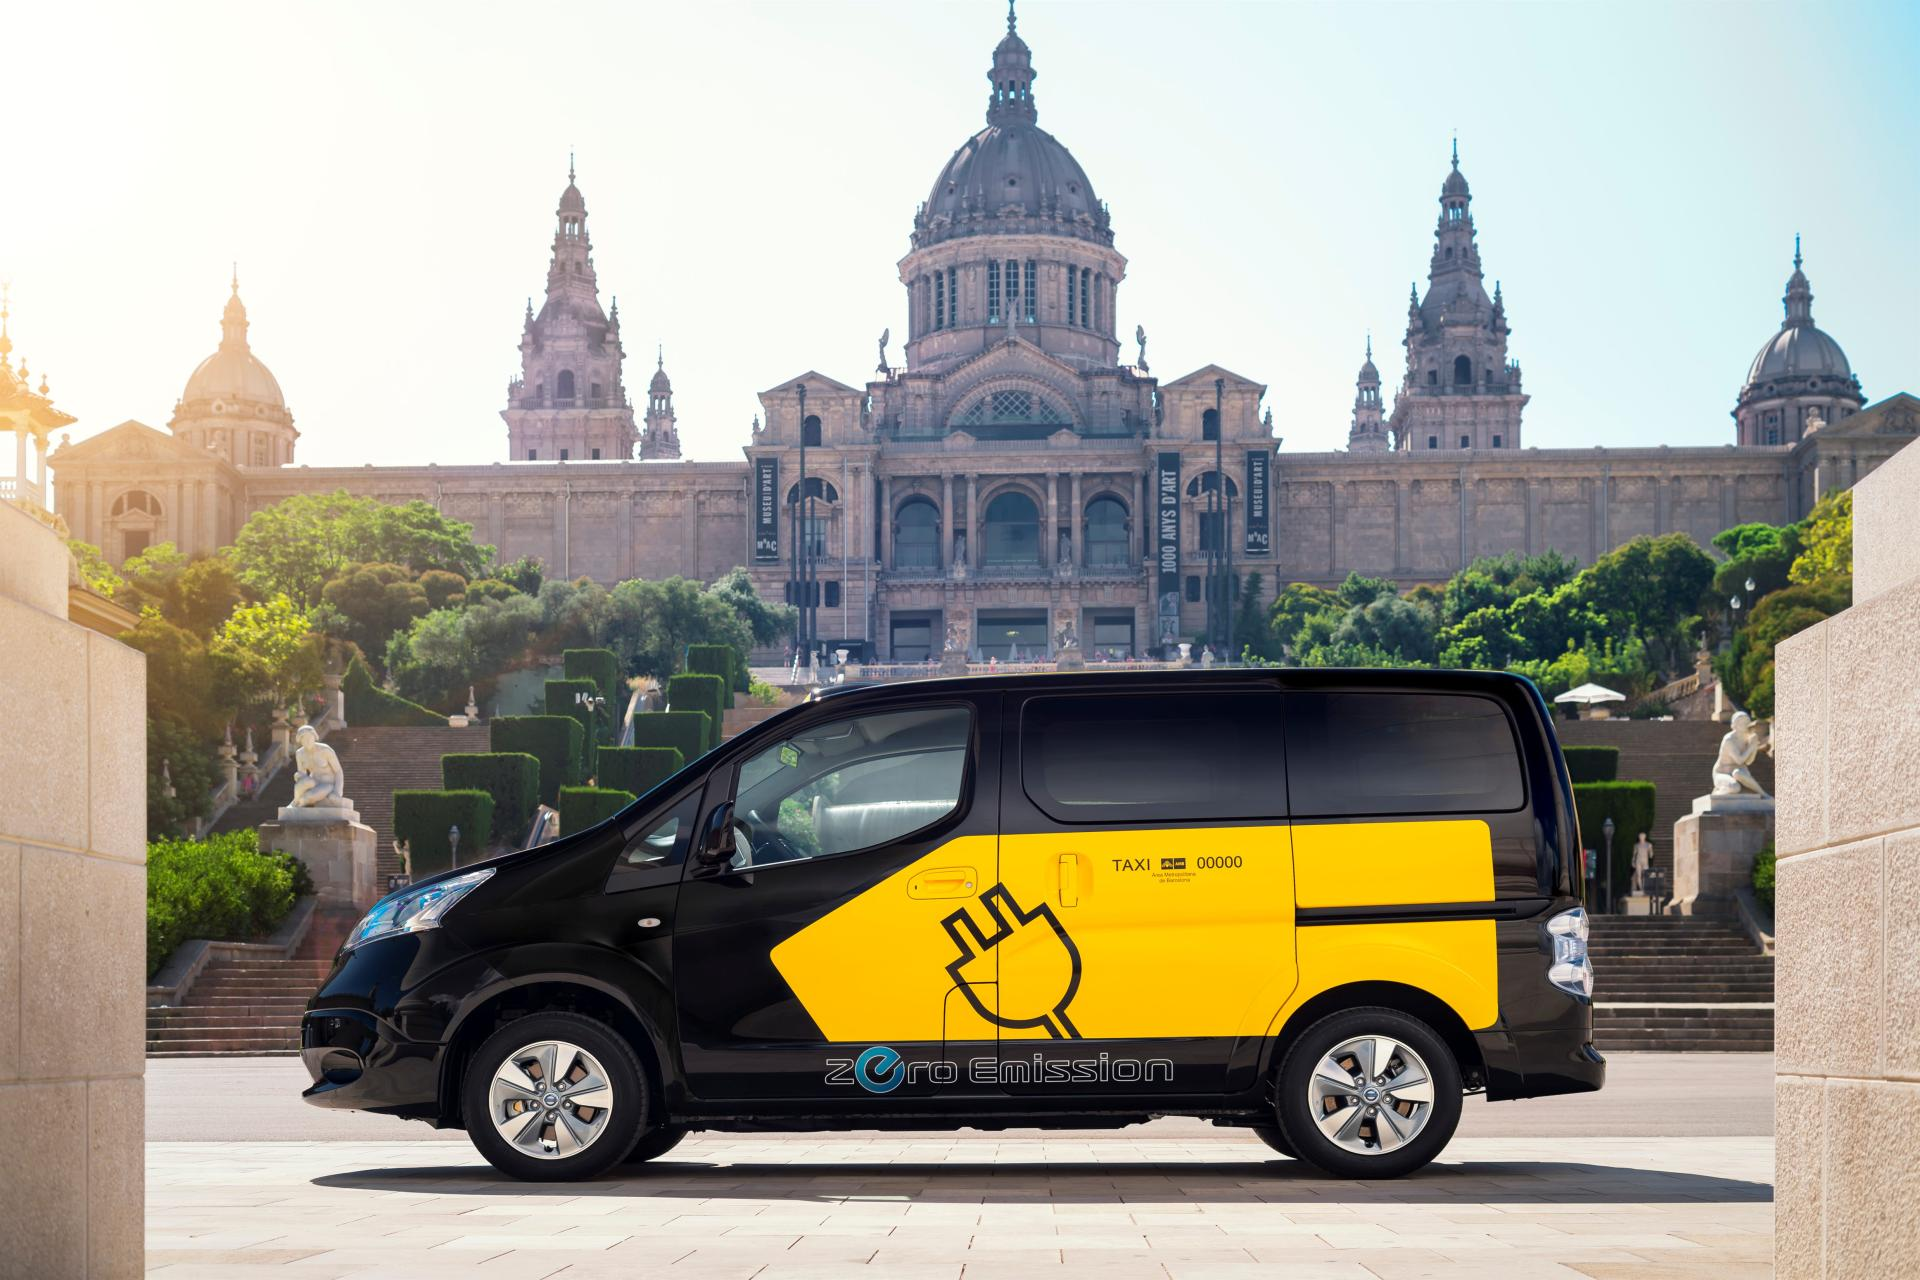 2014 nissan e nv200 electric barcelona taxi technical specifications and data engine - Cab in barcelona ...